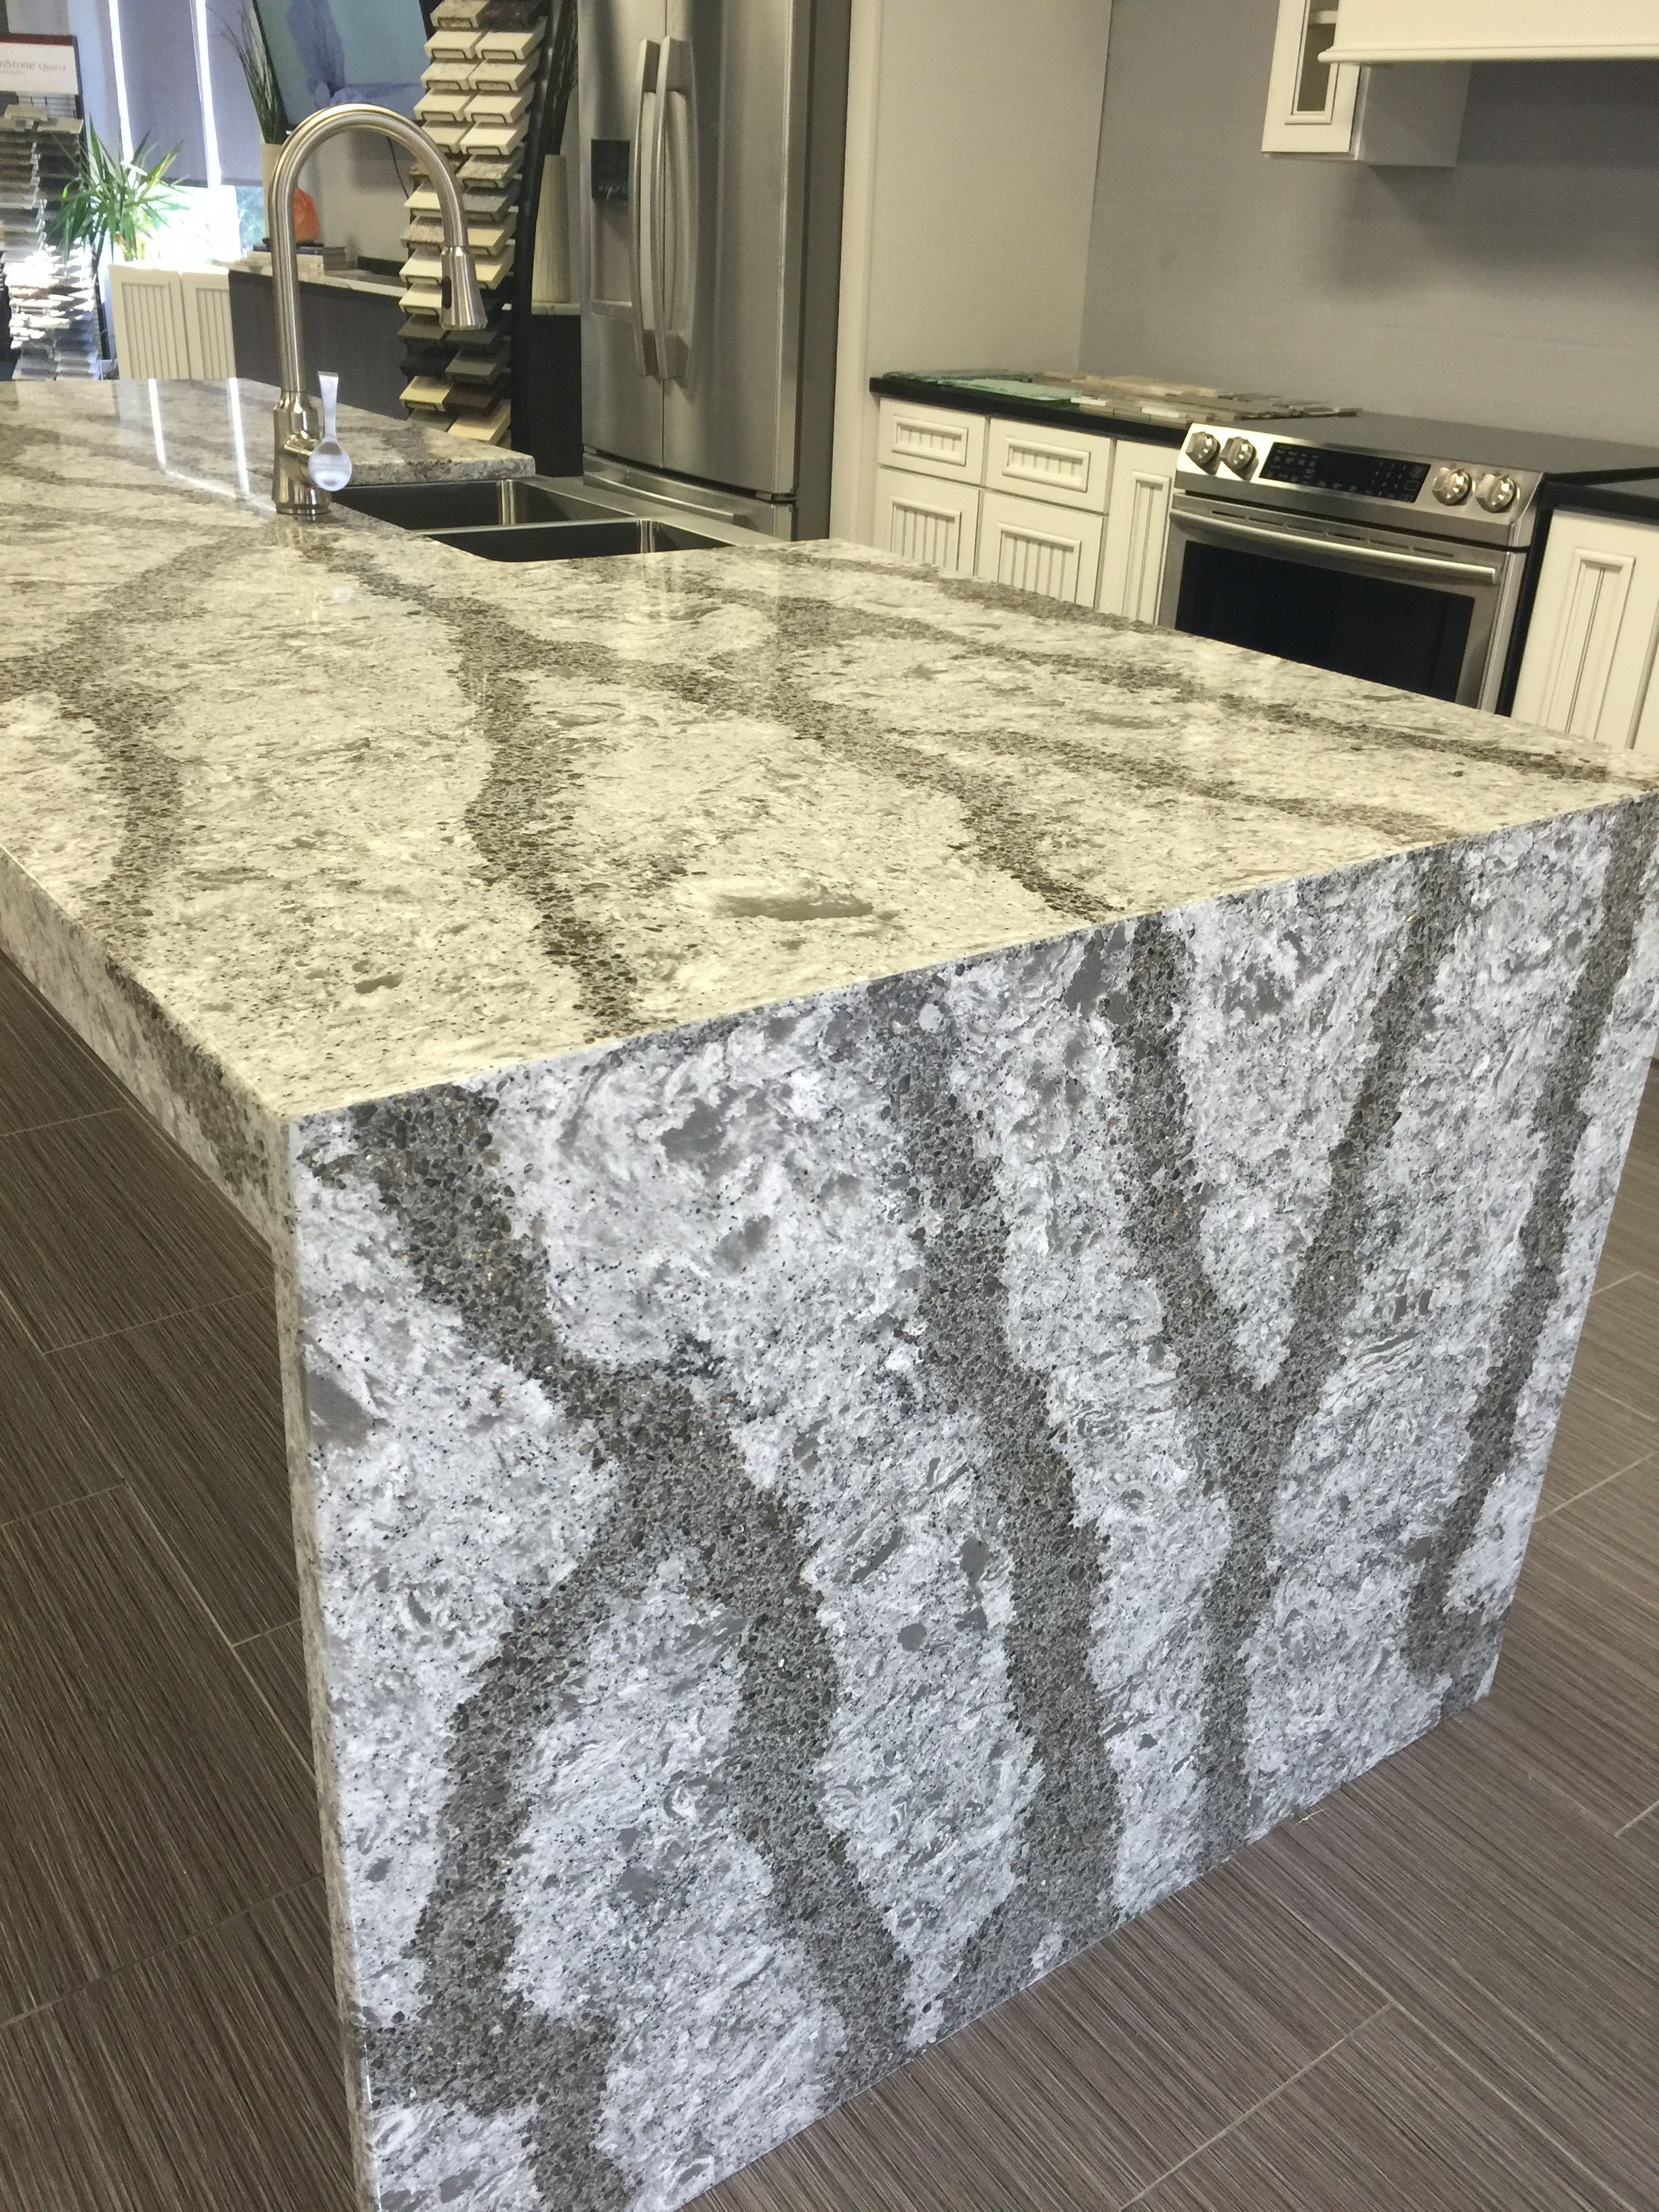 Cambria Galloway Quartz Countertop Done With A Waterfall